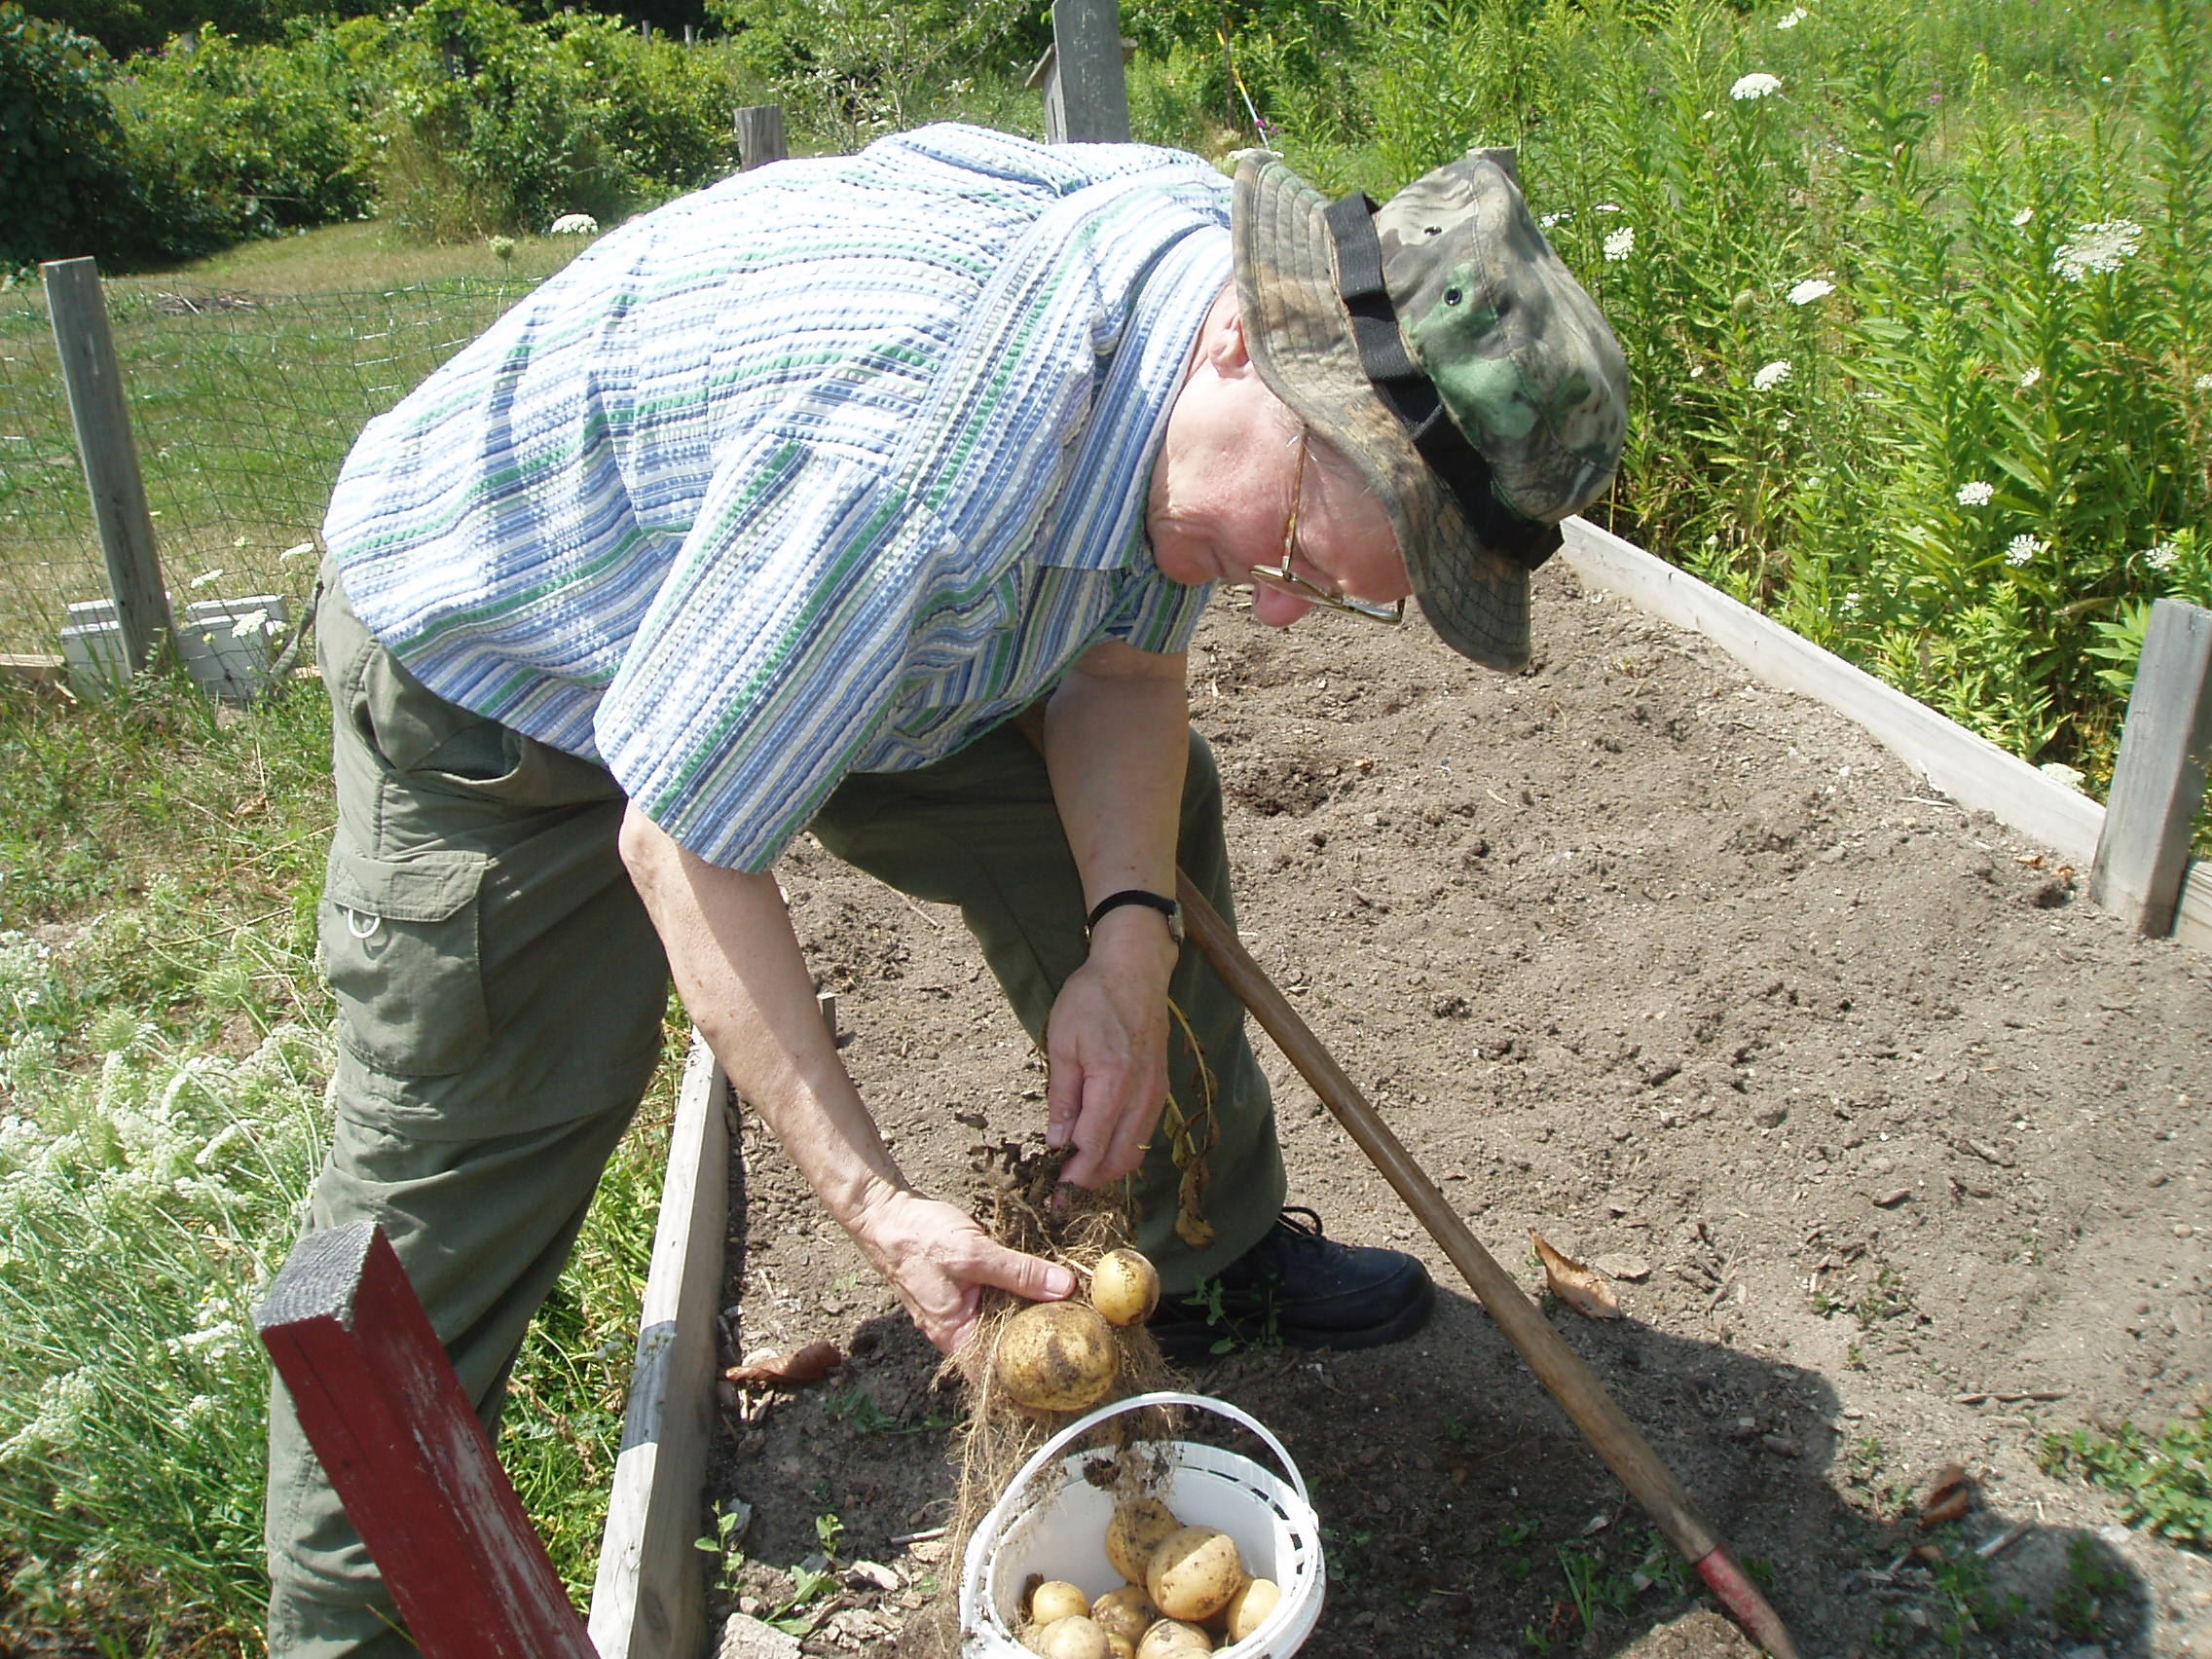 Sister Judith Kirt digging in the dirt